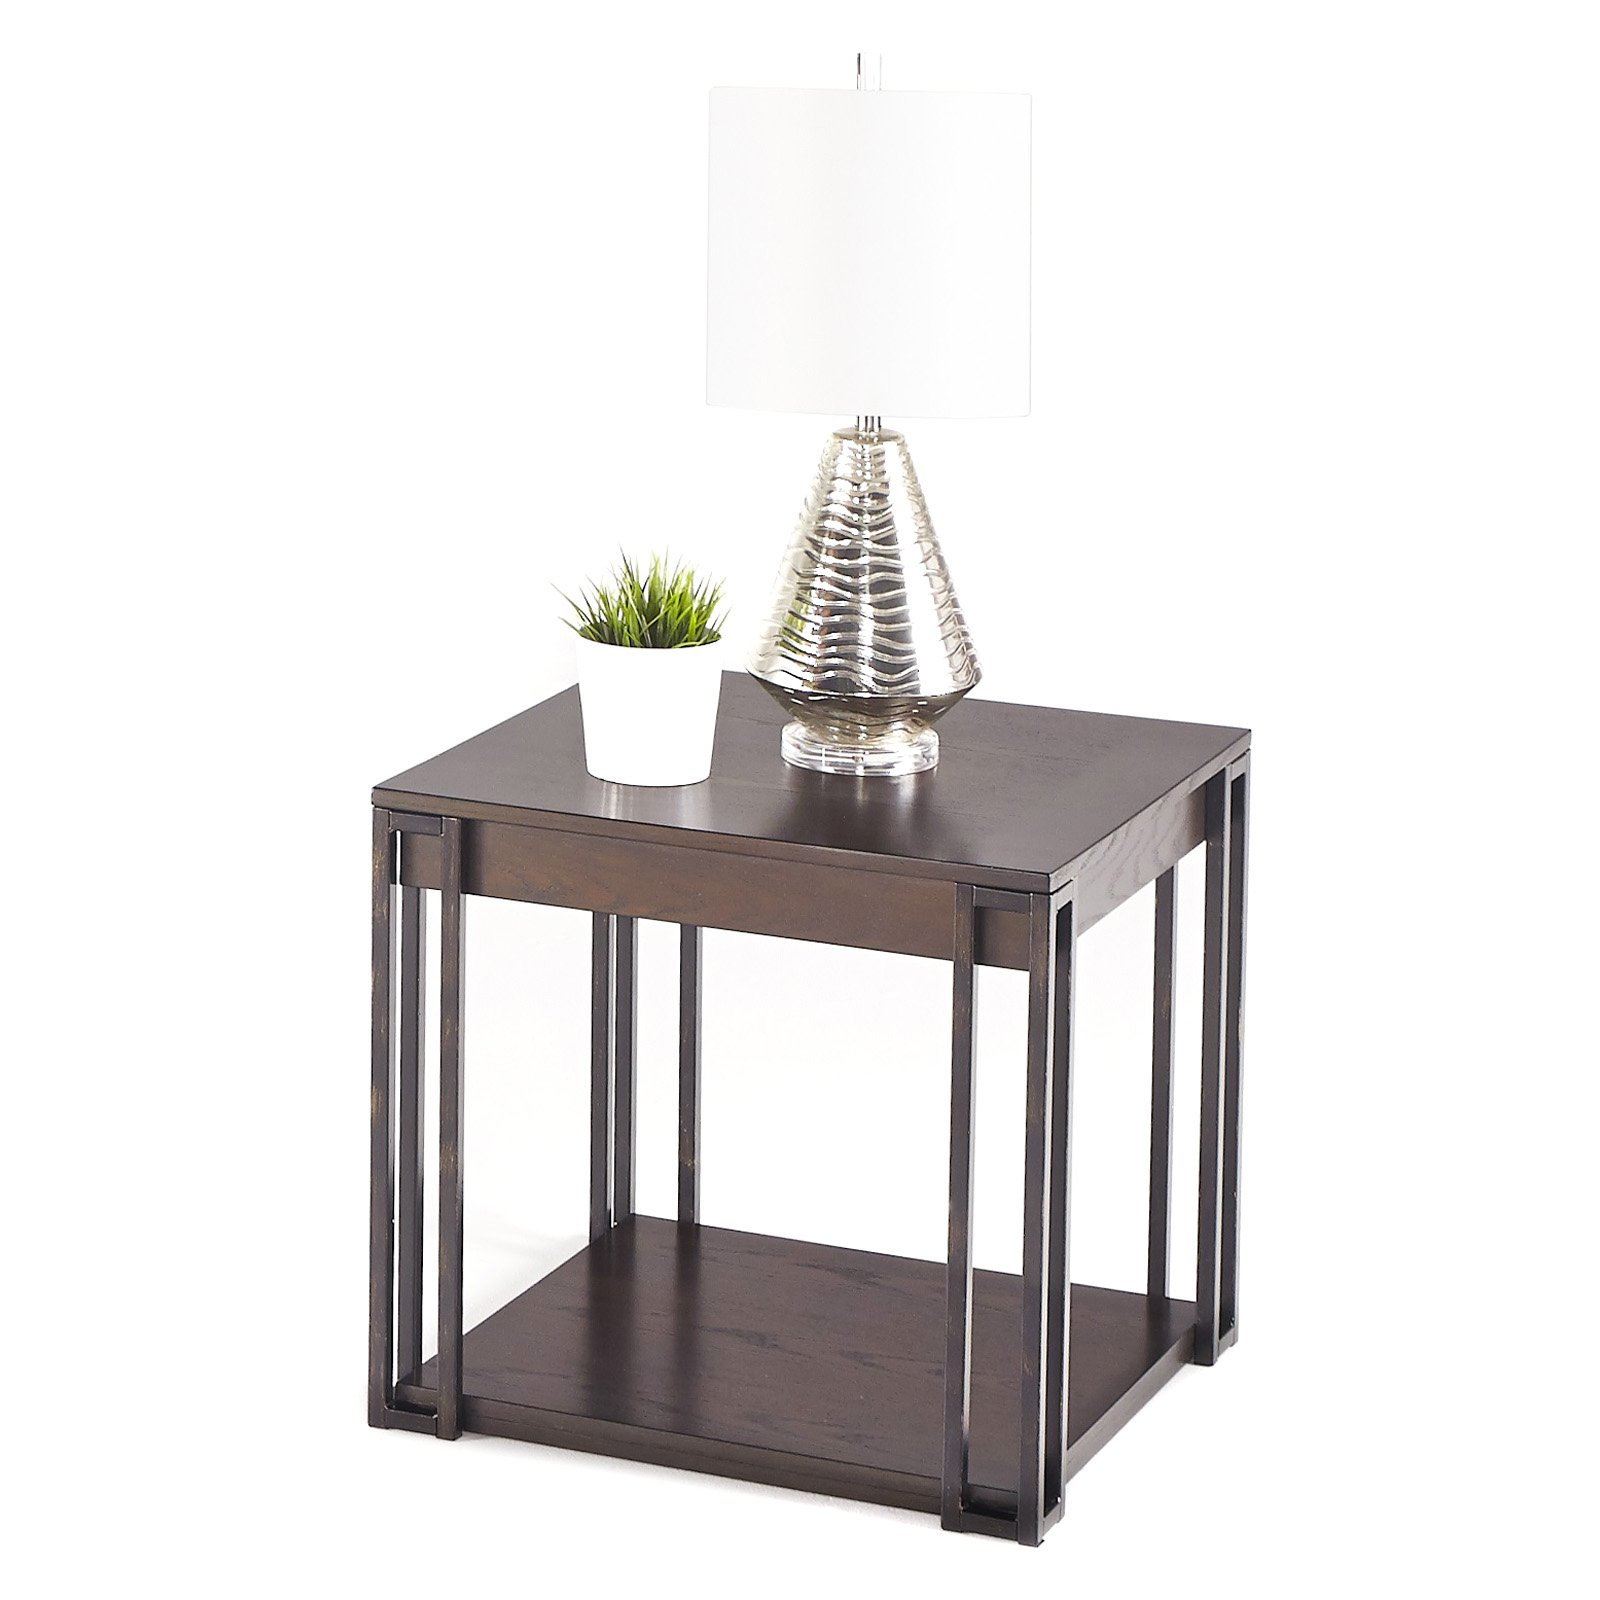 Progressive Citation Square Lamp Table by Progressive Furniture